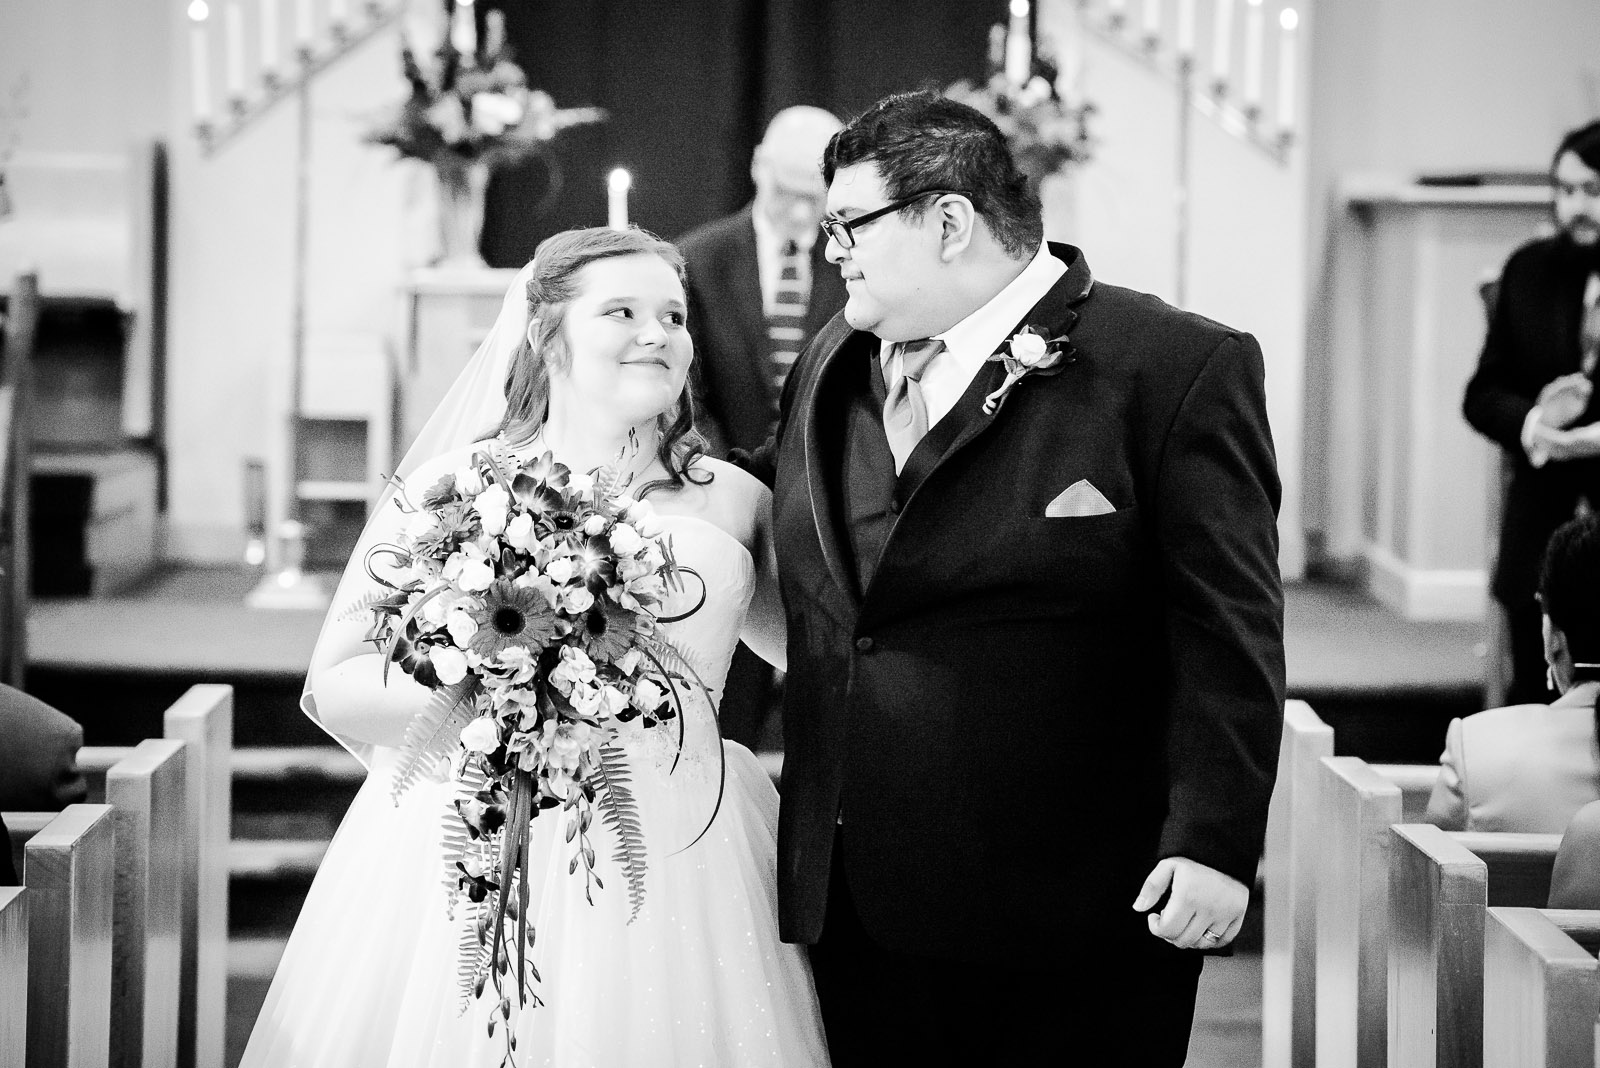 Eric_and_Christy_Photography_Blog_Shelby_Dony_Wedding-12